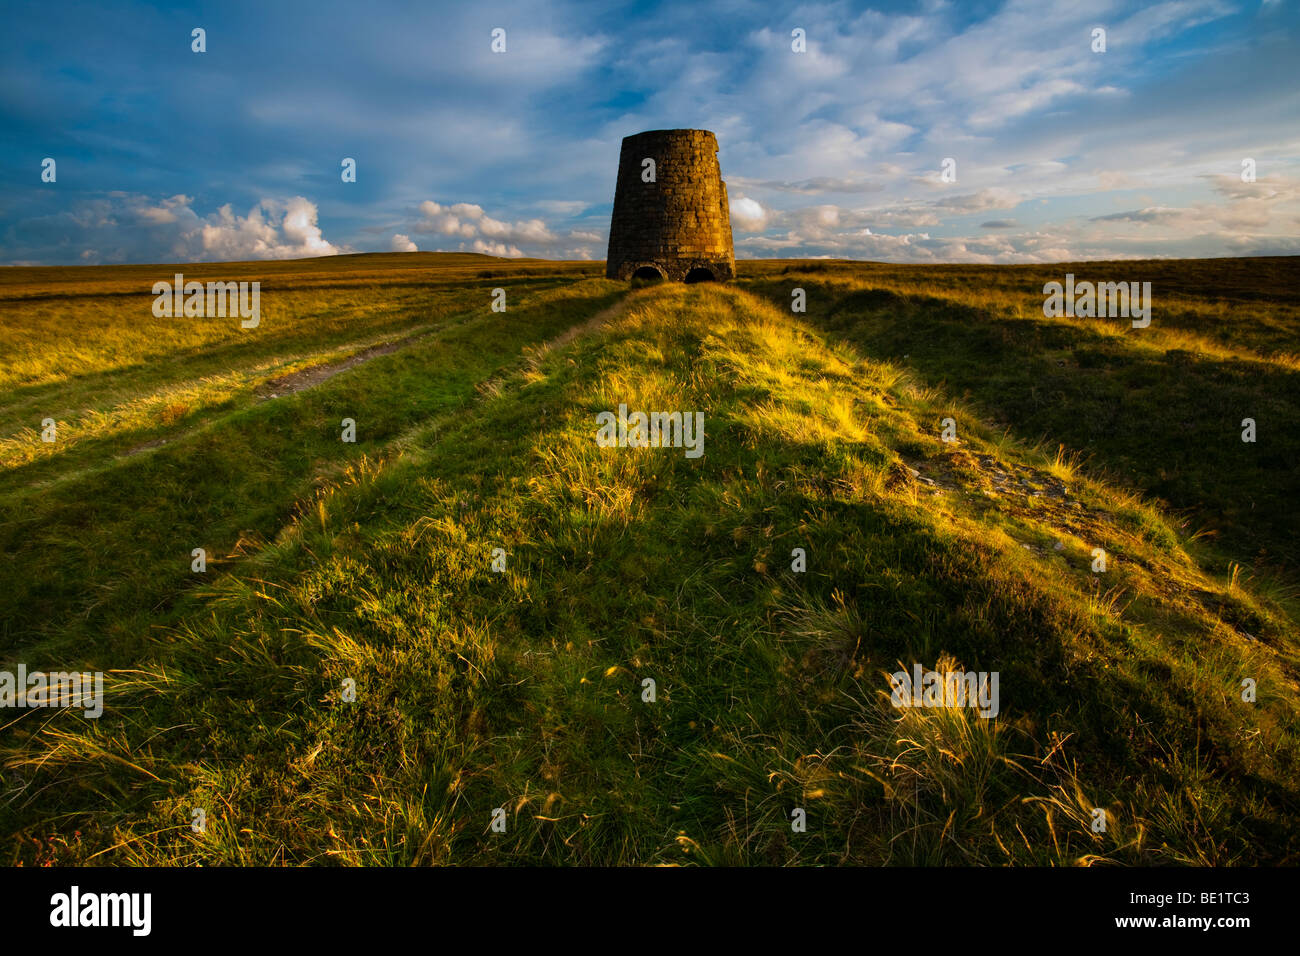 England, Northumberland, North Pennines. The remains of an old smelting flue on Dryburn Moor near Allendale. - Stock Image